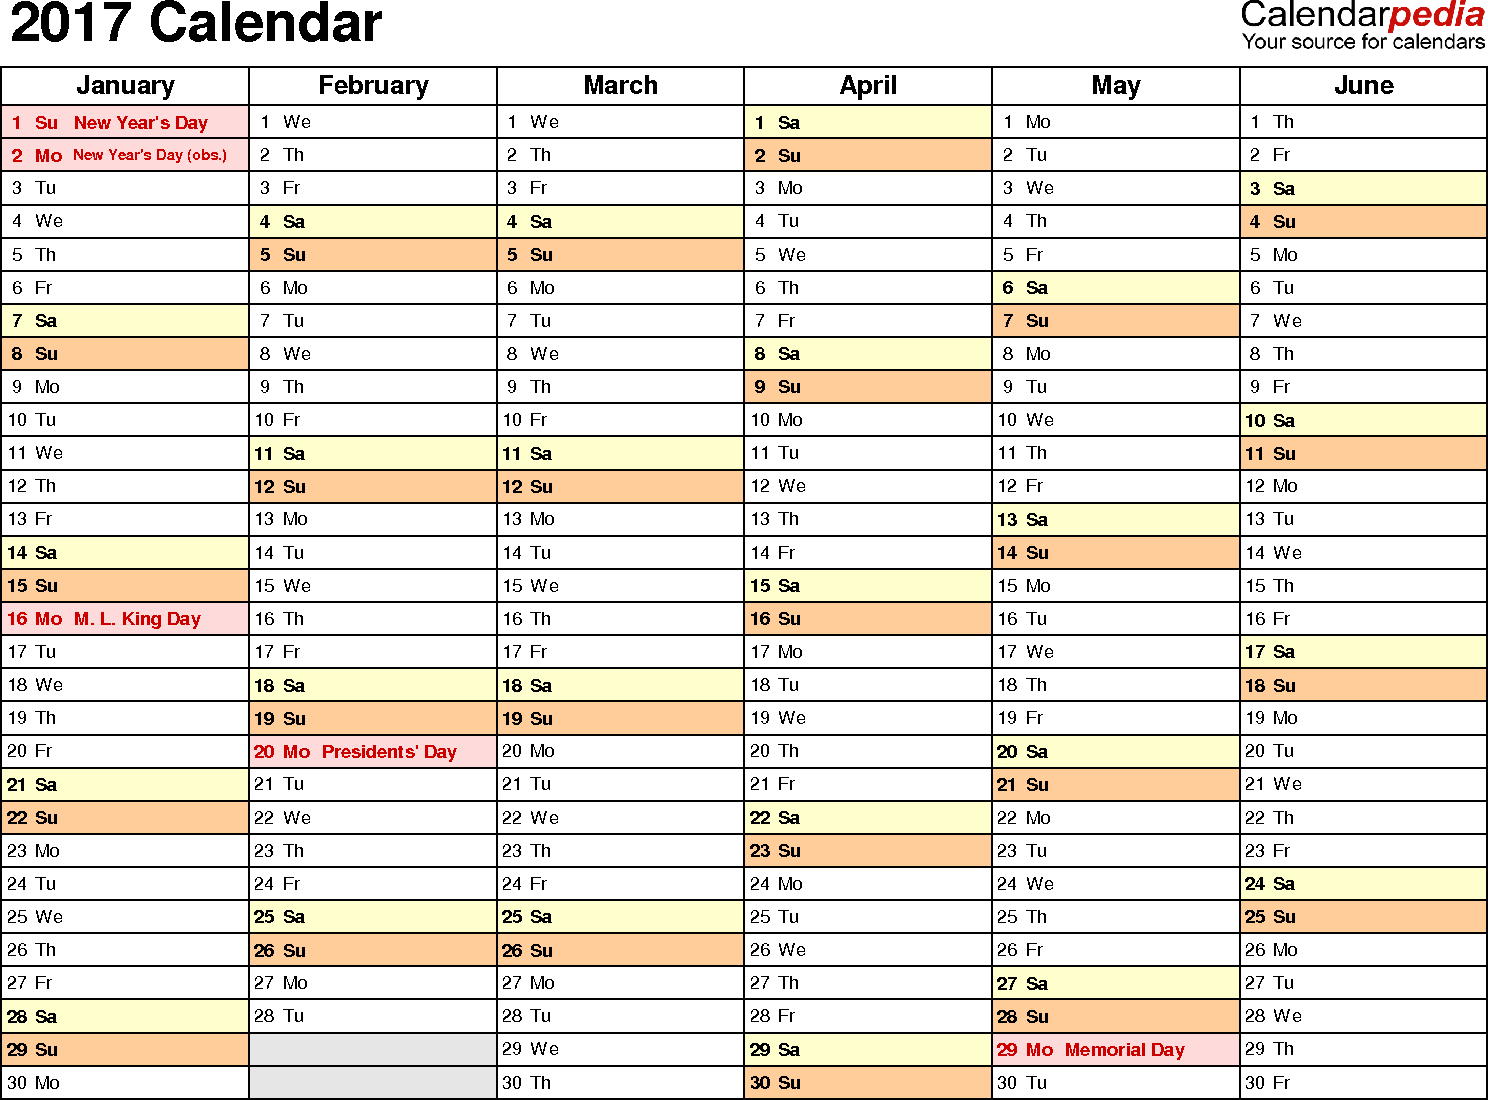 Ediblewildsus  Marvellous  Calendar  Download  Free Printable Excel Templates Xls With Inspiring Template   Calendar For Excel Months Horizontally  Pages Landscape Orientation With Enchanting Divide Formula In Excel Also Where Is Spell Check In Excel In Addition Excel Reports And How To Shade Every Other Row In Excel As Well As Wedding Guest List Excel Additionally Clear Formatting In Excel From Calendarpediacom With Ediblewildsus  Inspiring  Calendar  Download  Free Printable Excel Templates Xls With Enchanting Template   Calendar For Excel Months Horizontally  Pages Landscape Orientation And Marvellous Divide Formula In Excel Also Where Is Spell Check In Excel In Addition Excel Reports From Calendarpediacom